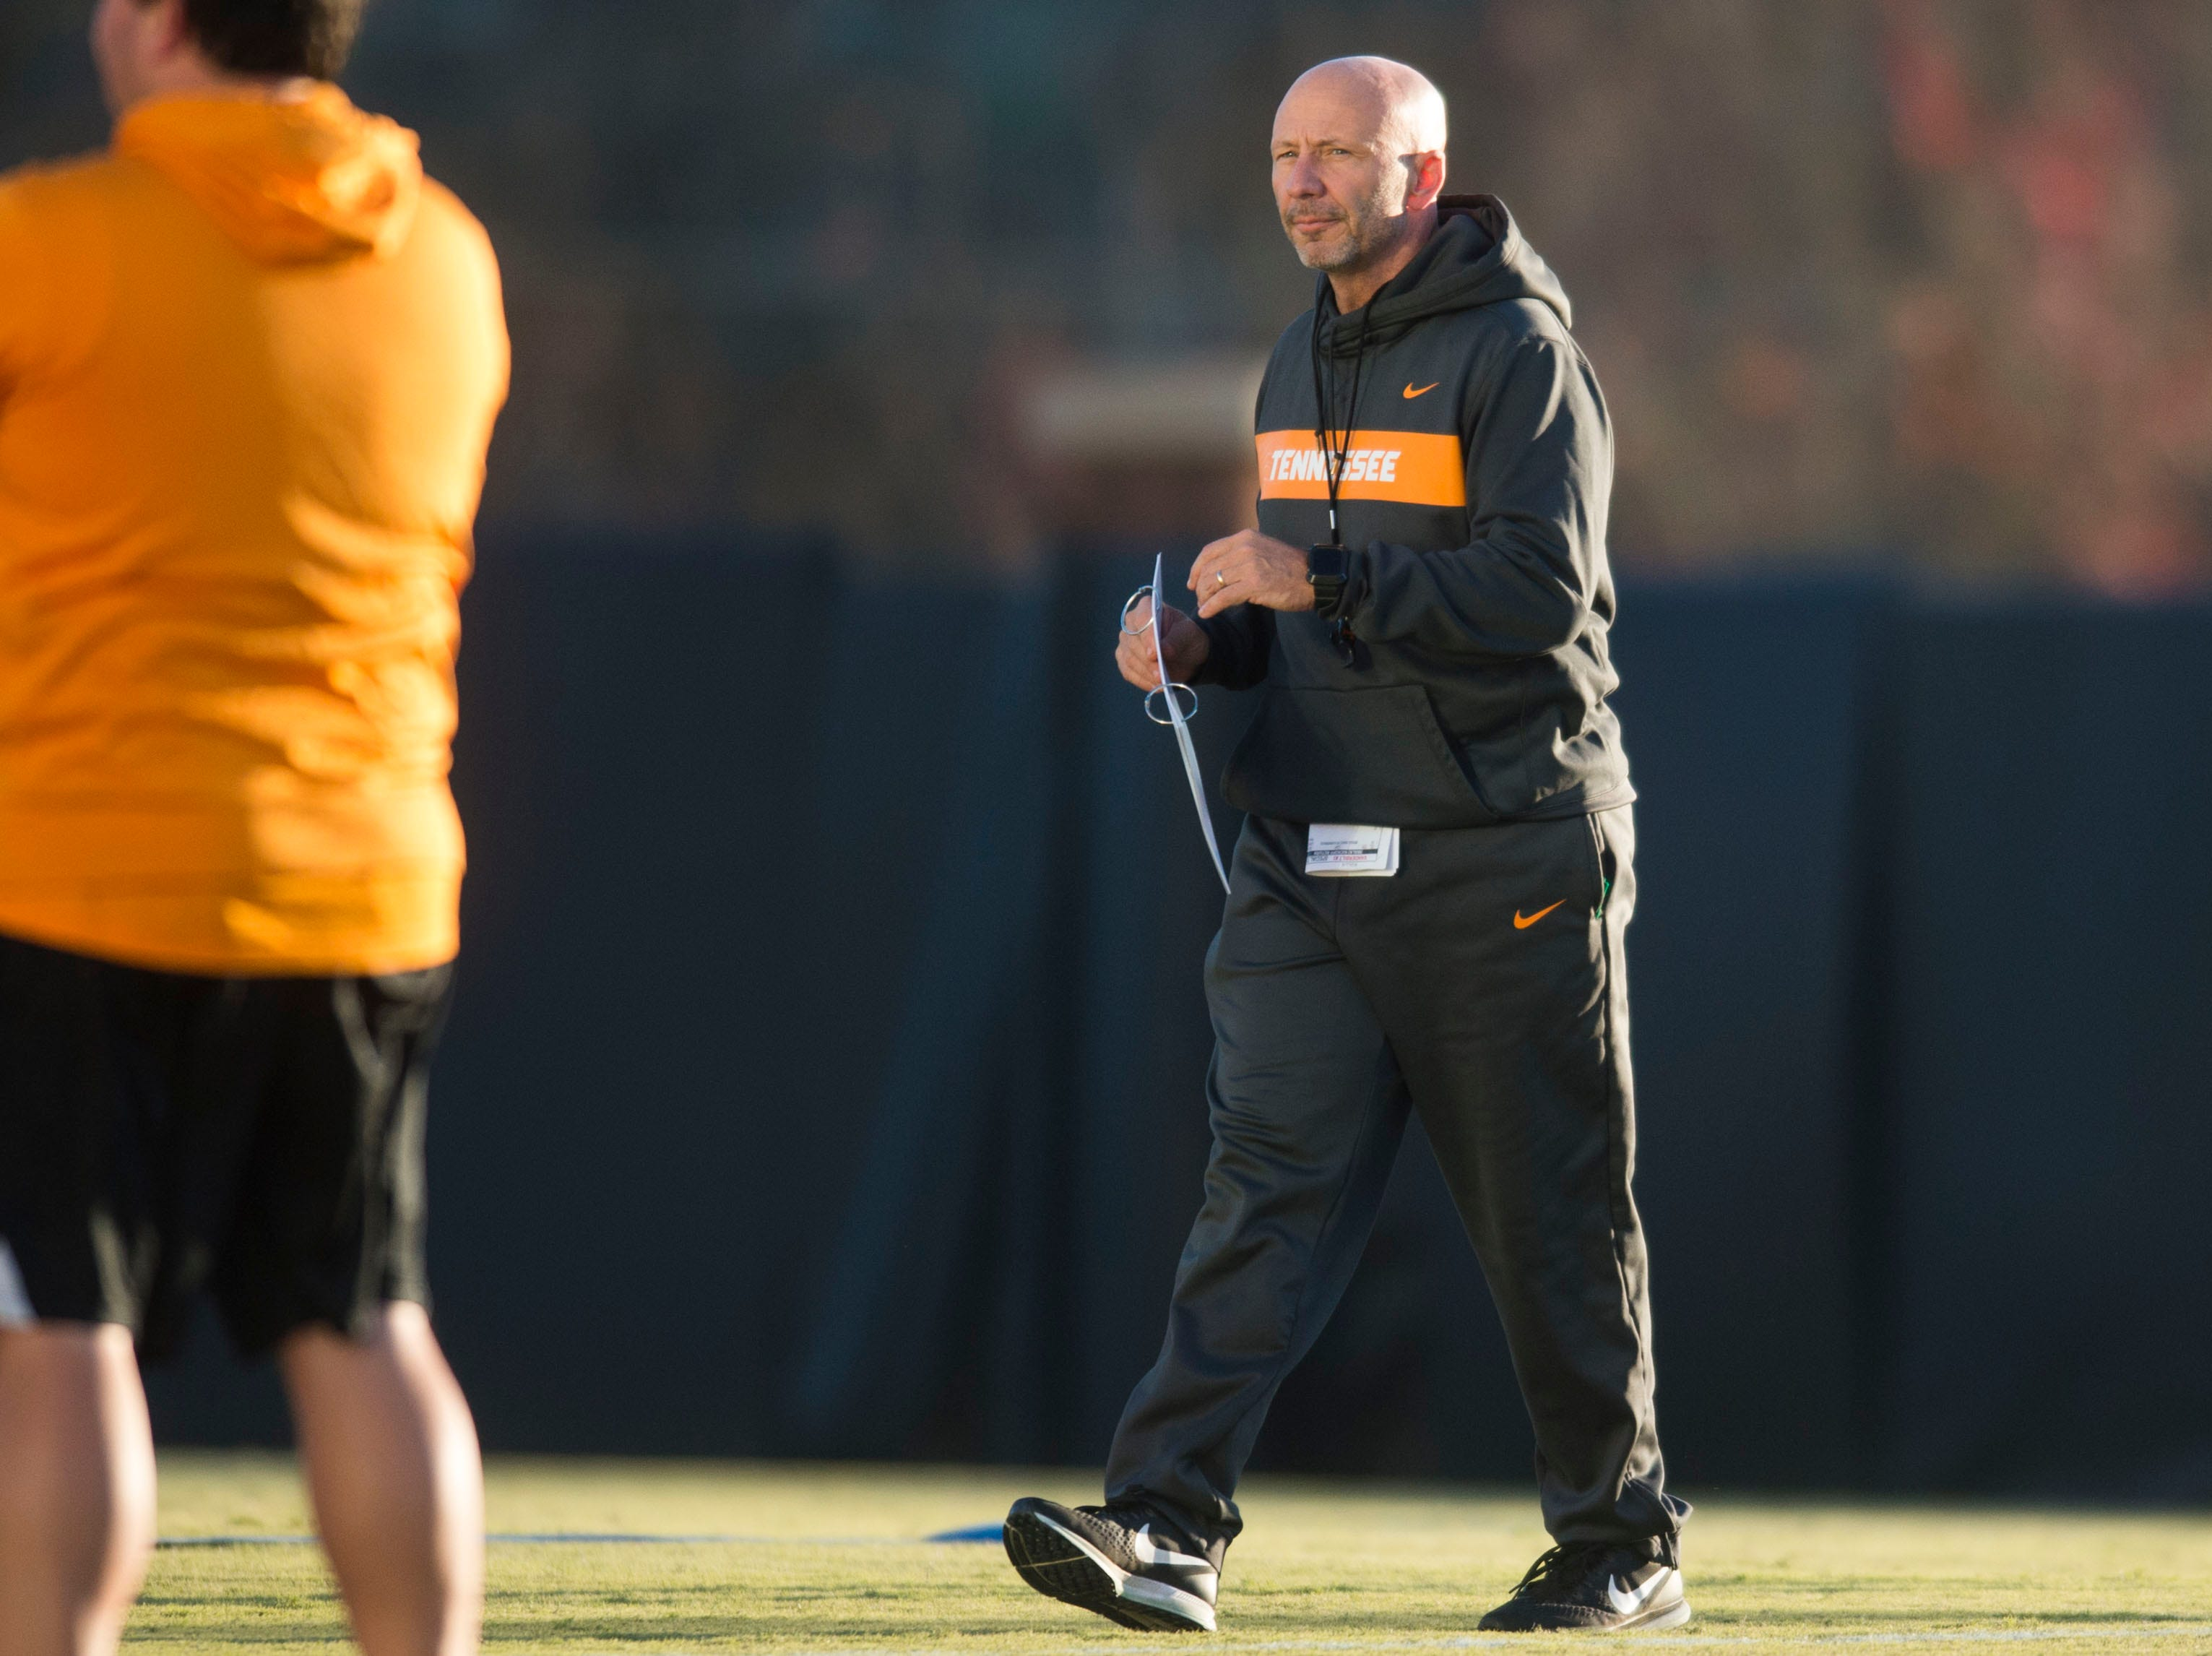 Special teams coordinator and safeties coach Charles Kelly walks on the field during Vols football practice Wednesday, Nov. 21, 2018.